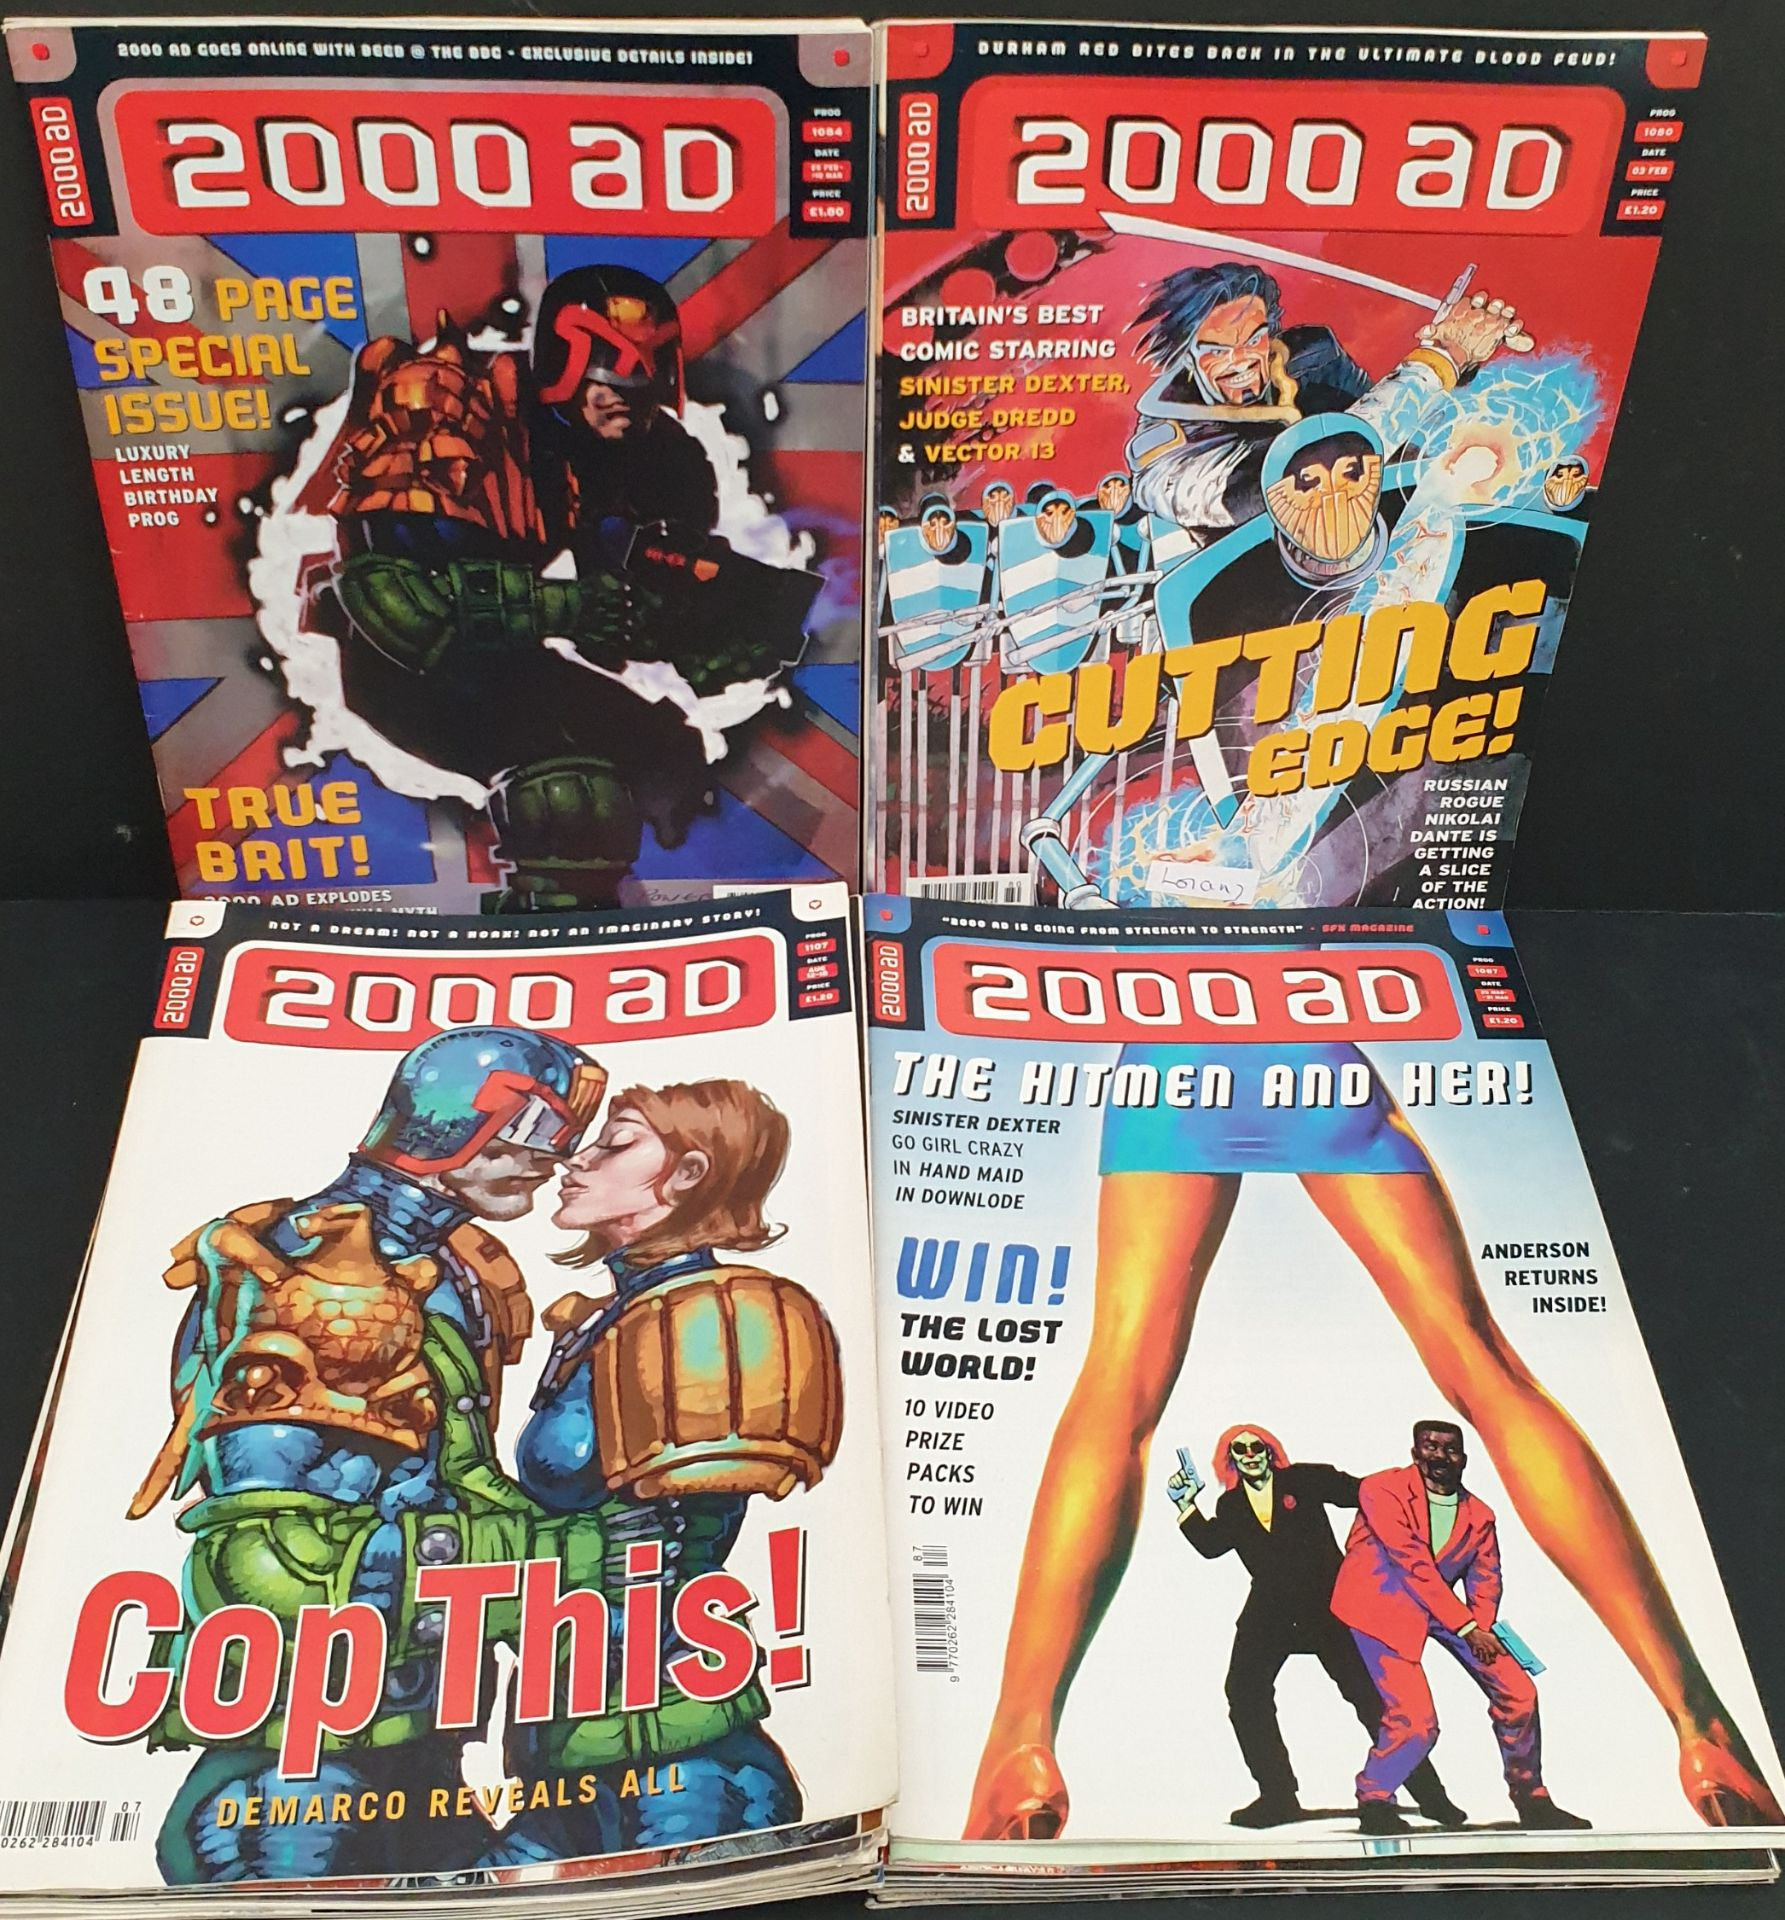 Lot 53 - Vintage Parcel of 25 Collectable Comics 2000 AD Judge Dredd